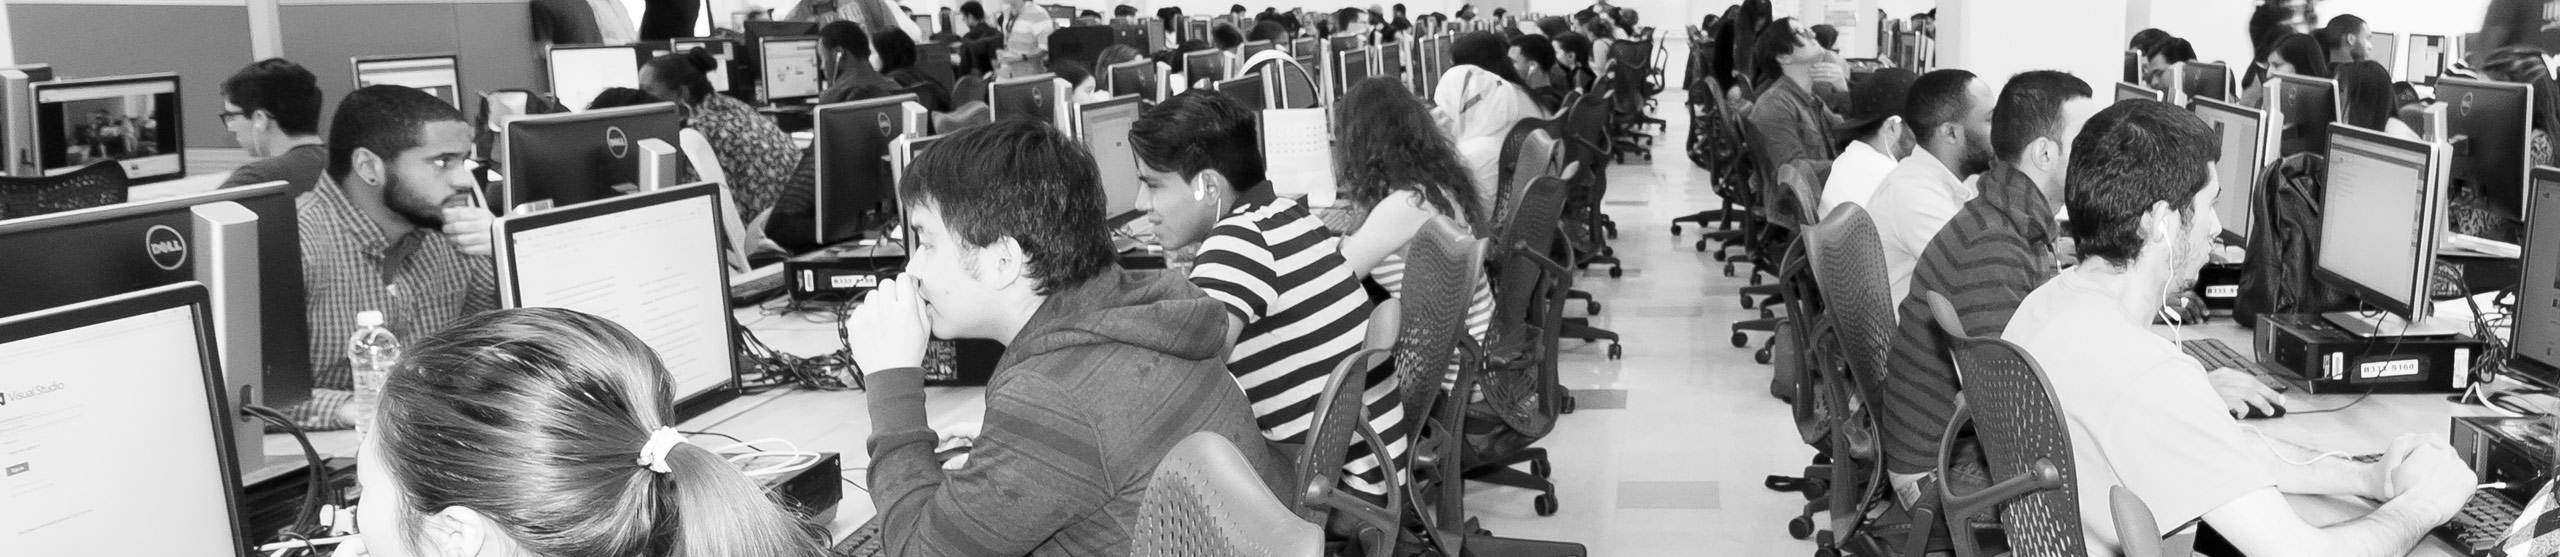 Students using computers at Computer LAB